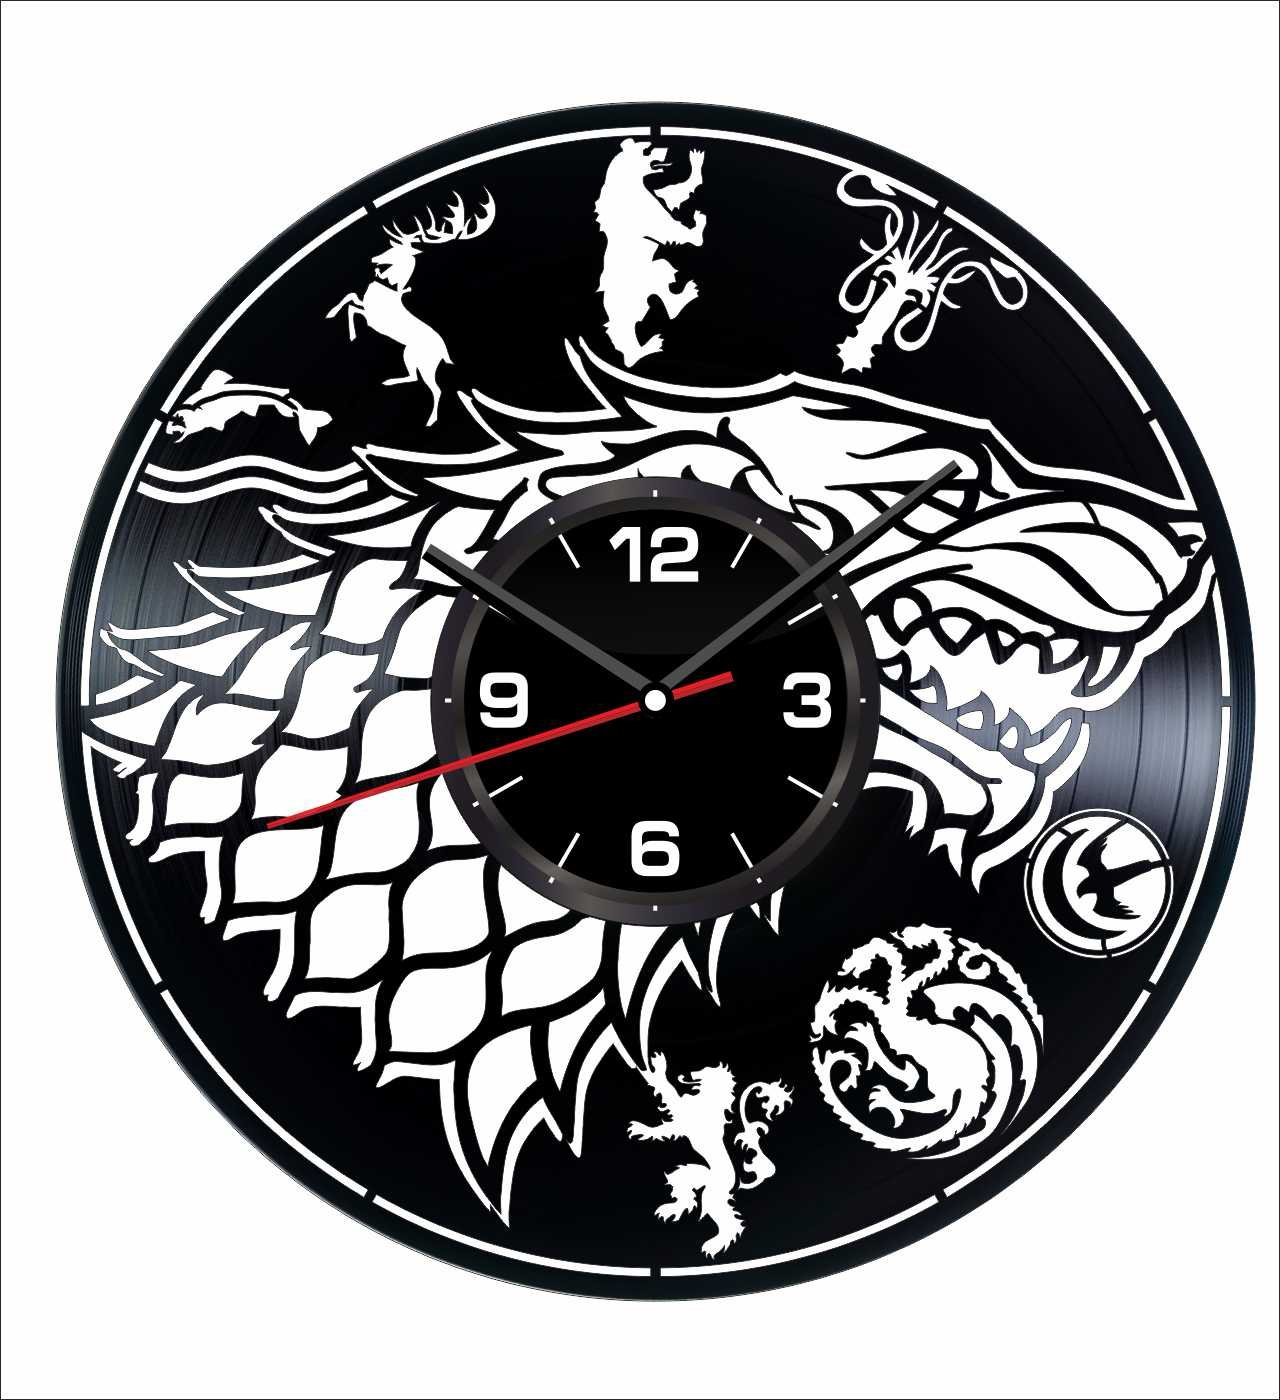 Game of Thrones Stark Wall Clock Made of Vintage Vinyl Records - Stylish clock and Amazing Gifts Idea – Unique Home Decor – Personalized Presents for Men Women – Great for Living Room Bedroom Kitchen